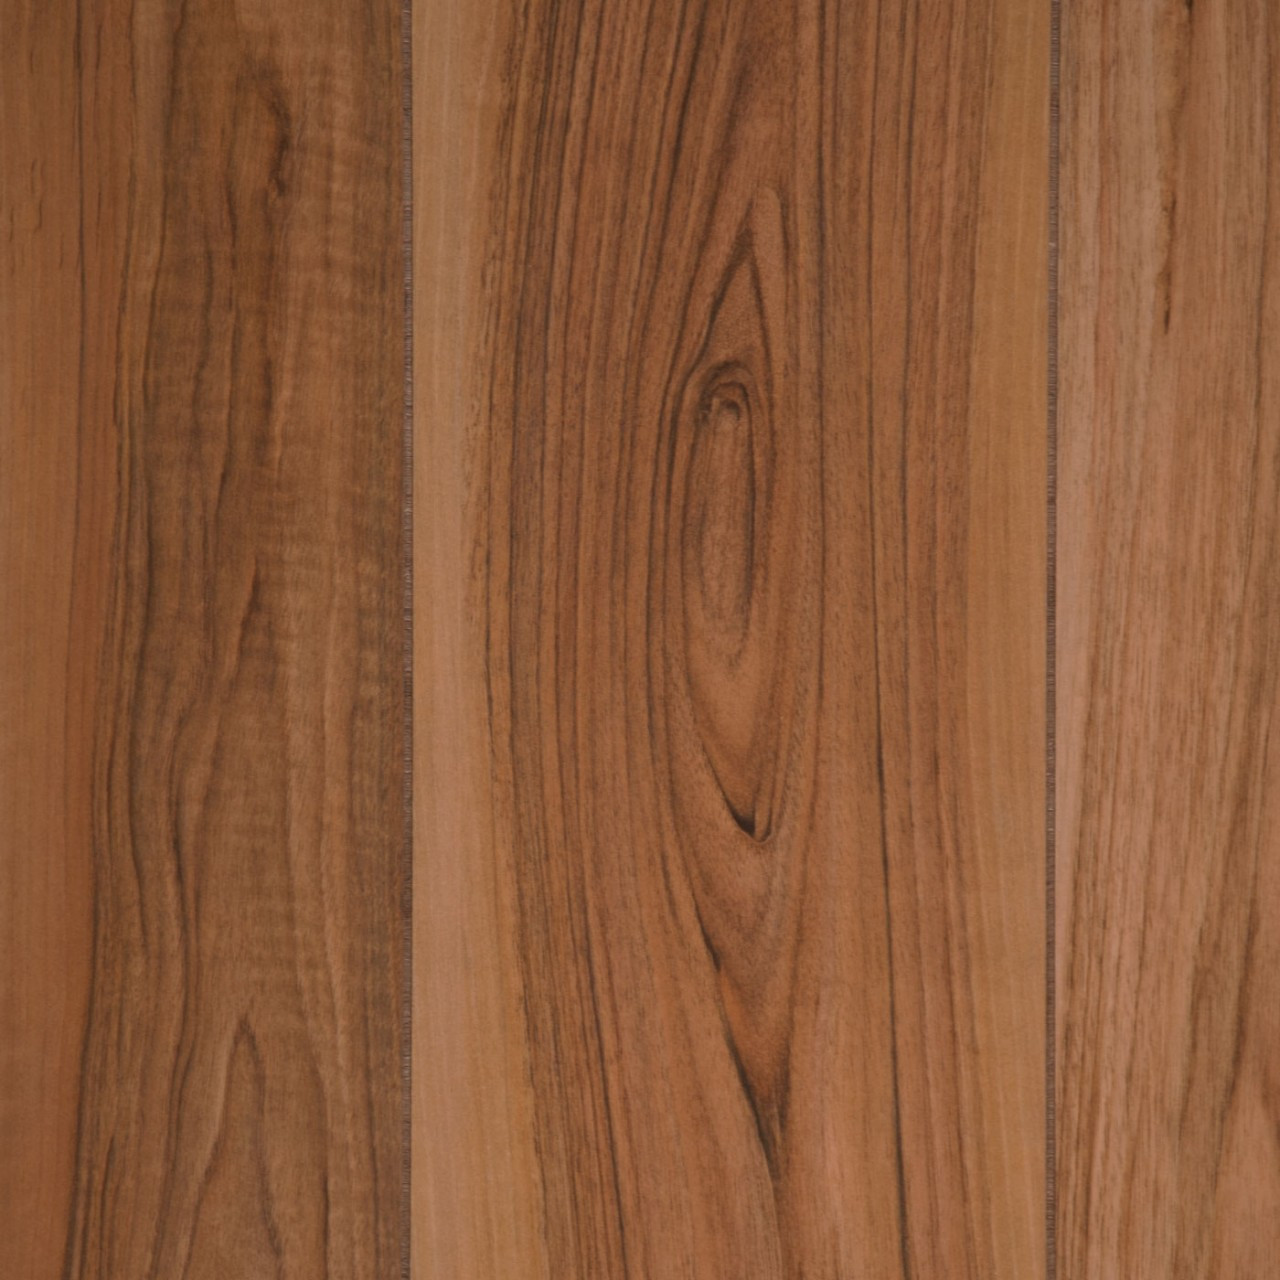 New England Classic Wood Panel System Photos